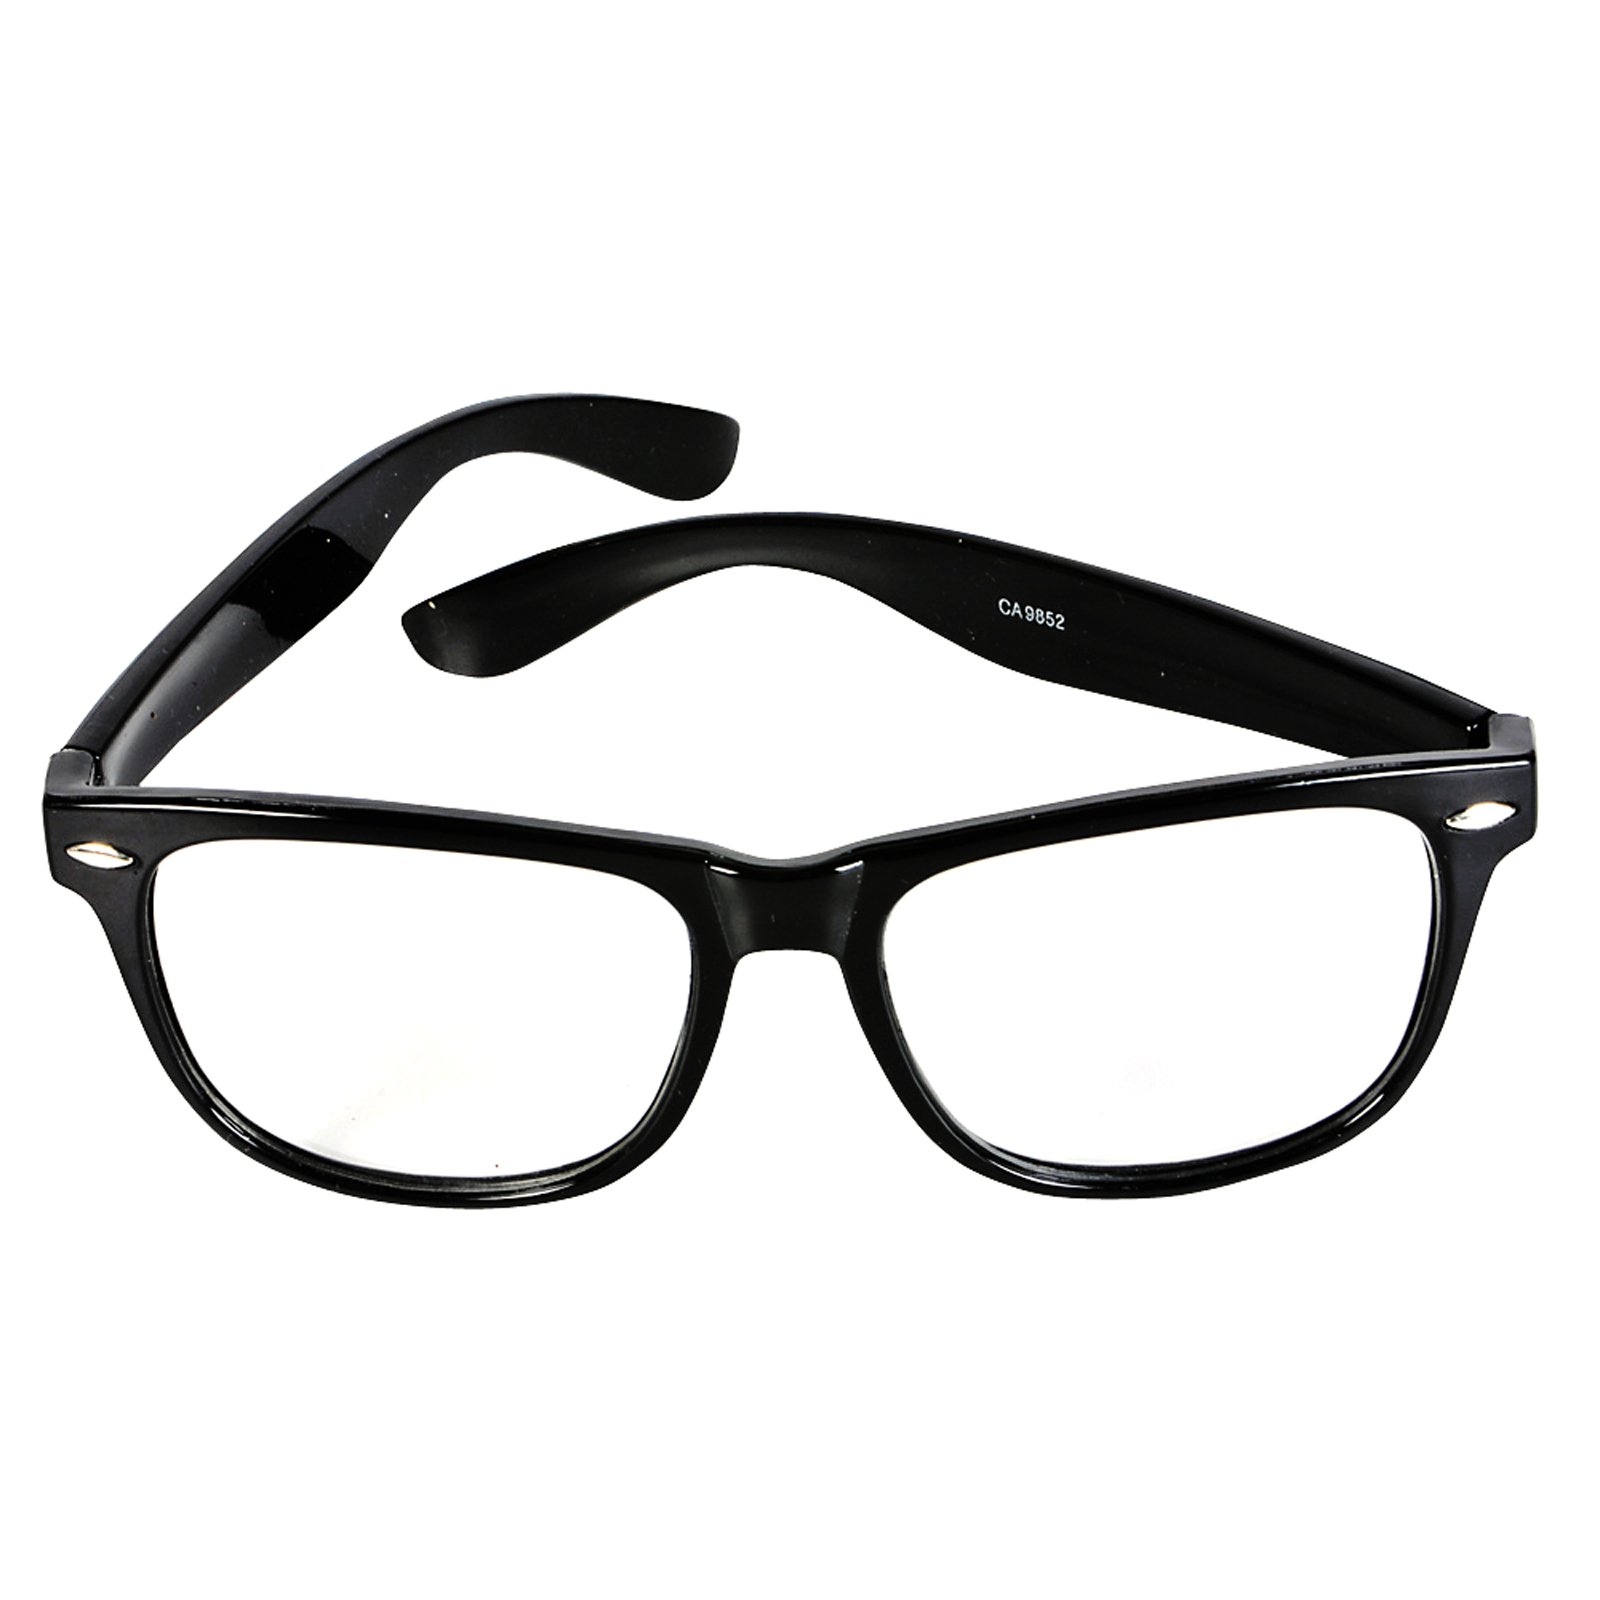 Glasses clipart #1, Download drawings